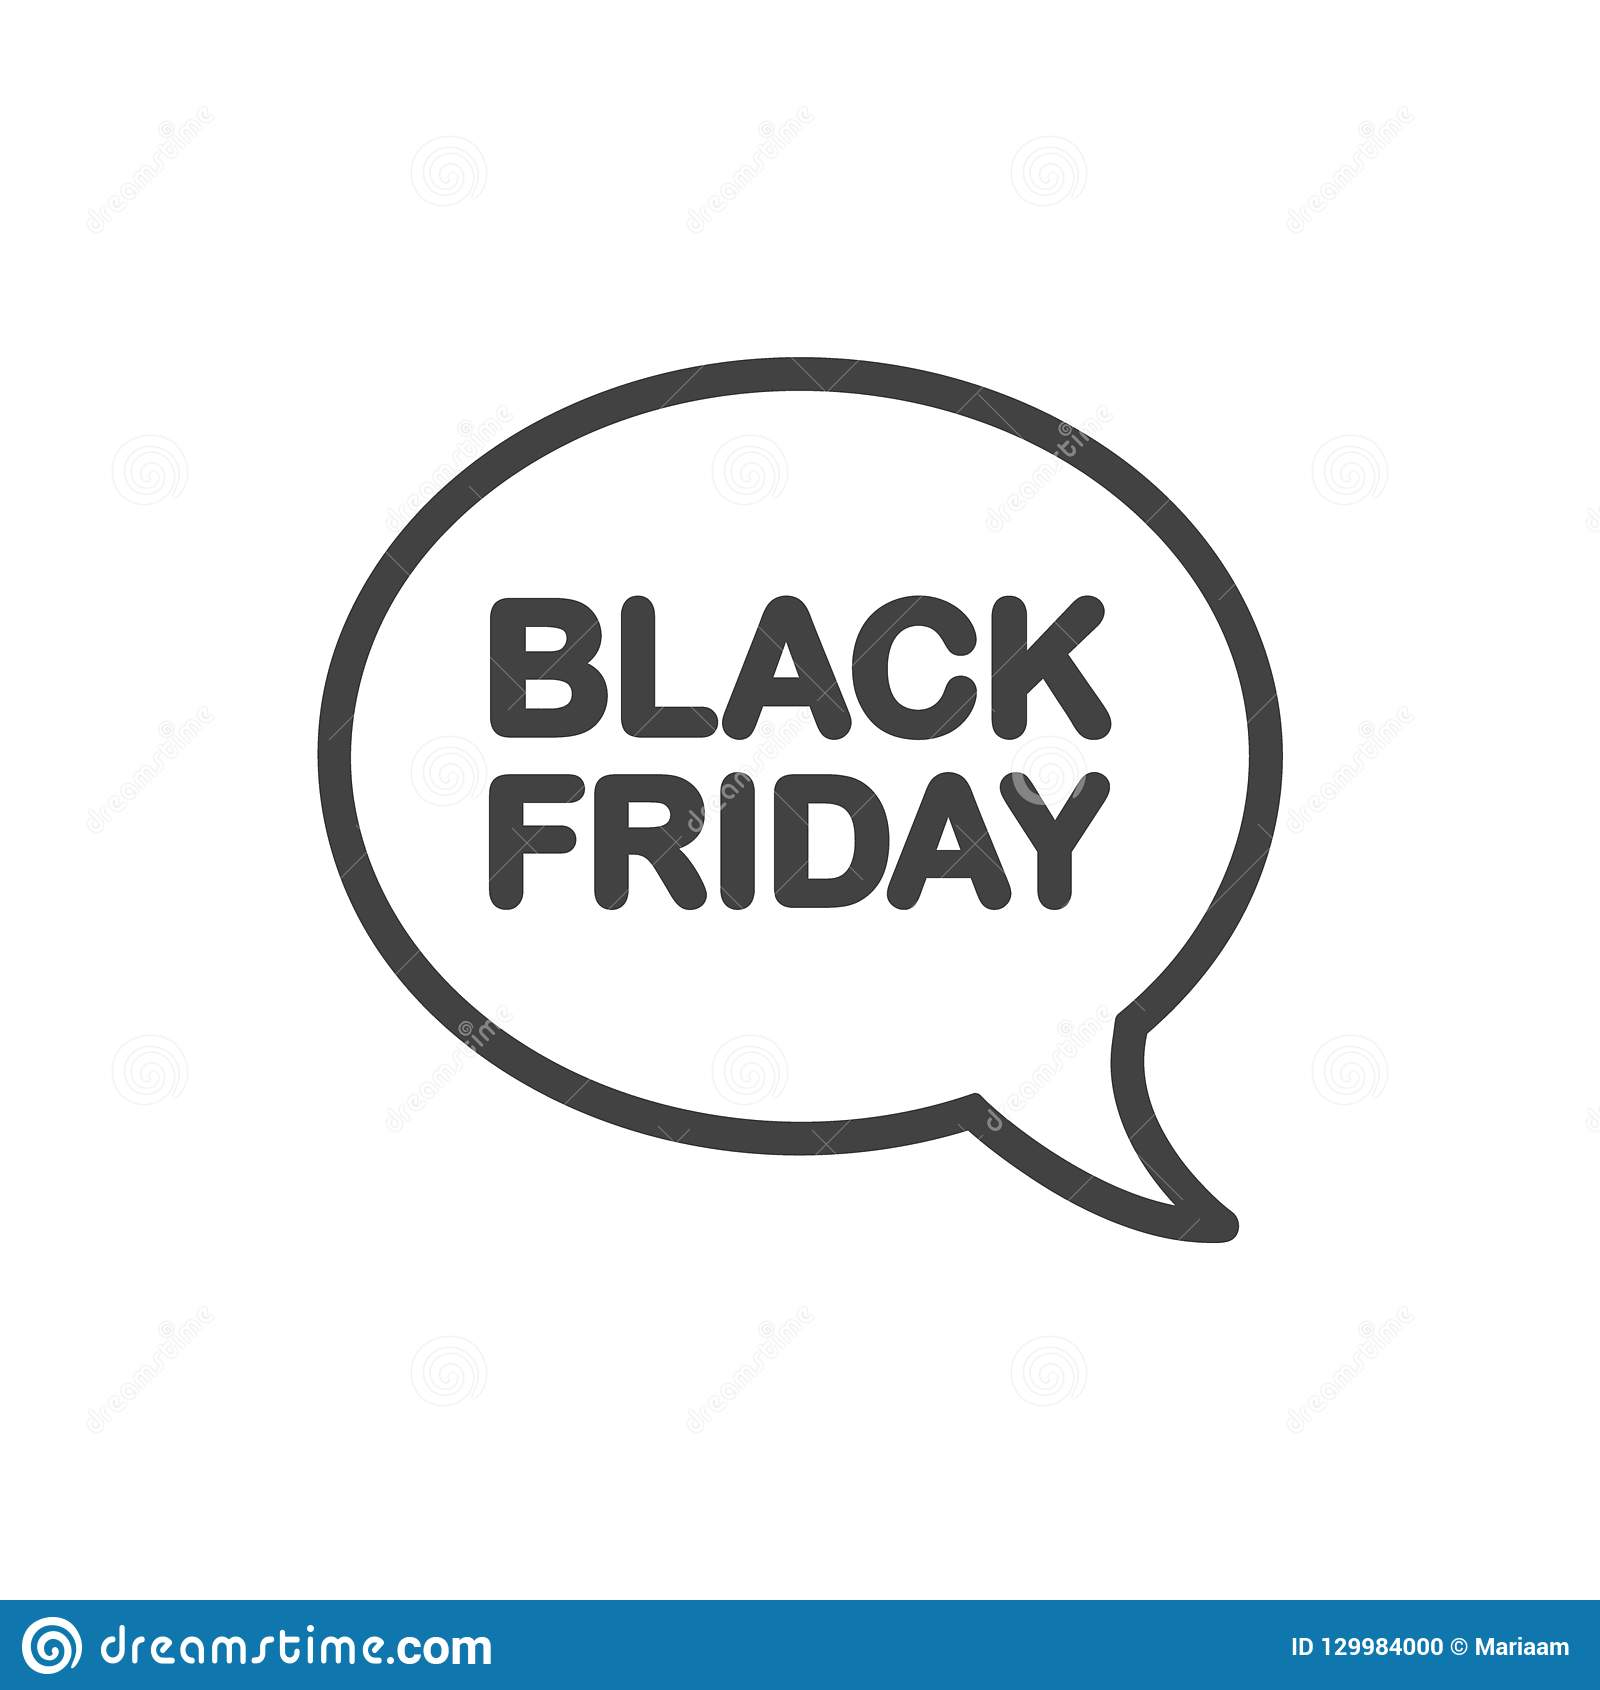 edd94a3a8 Great Offers On Black Friday! Speech Bubble Clean Design Icon. Stock ...